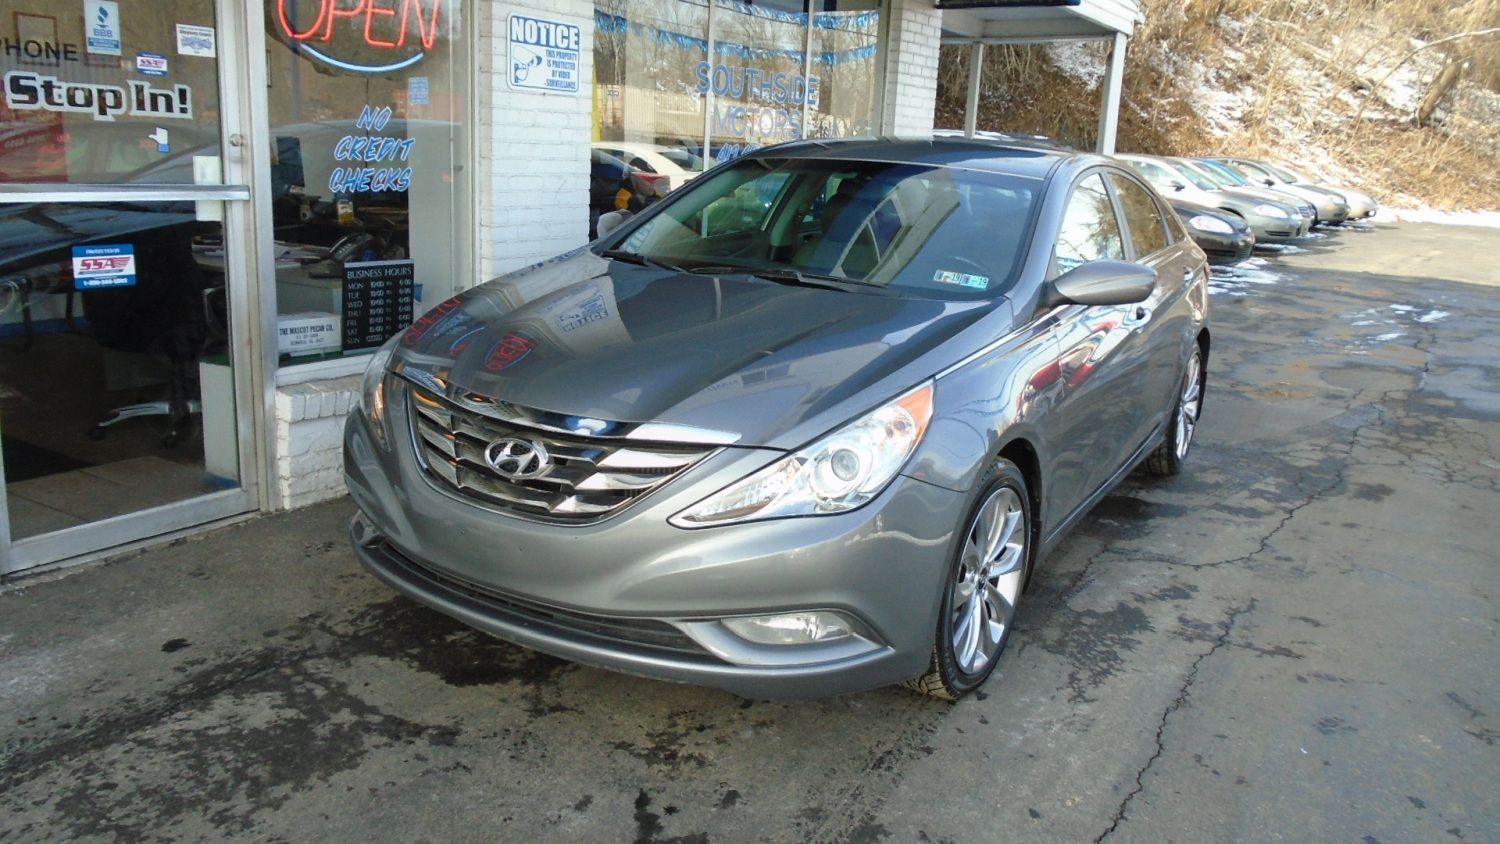 2012 #Hyundai Sonata SE. Well Equipped And Great Gas Mileage!